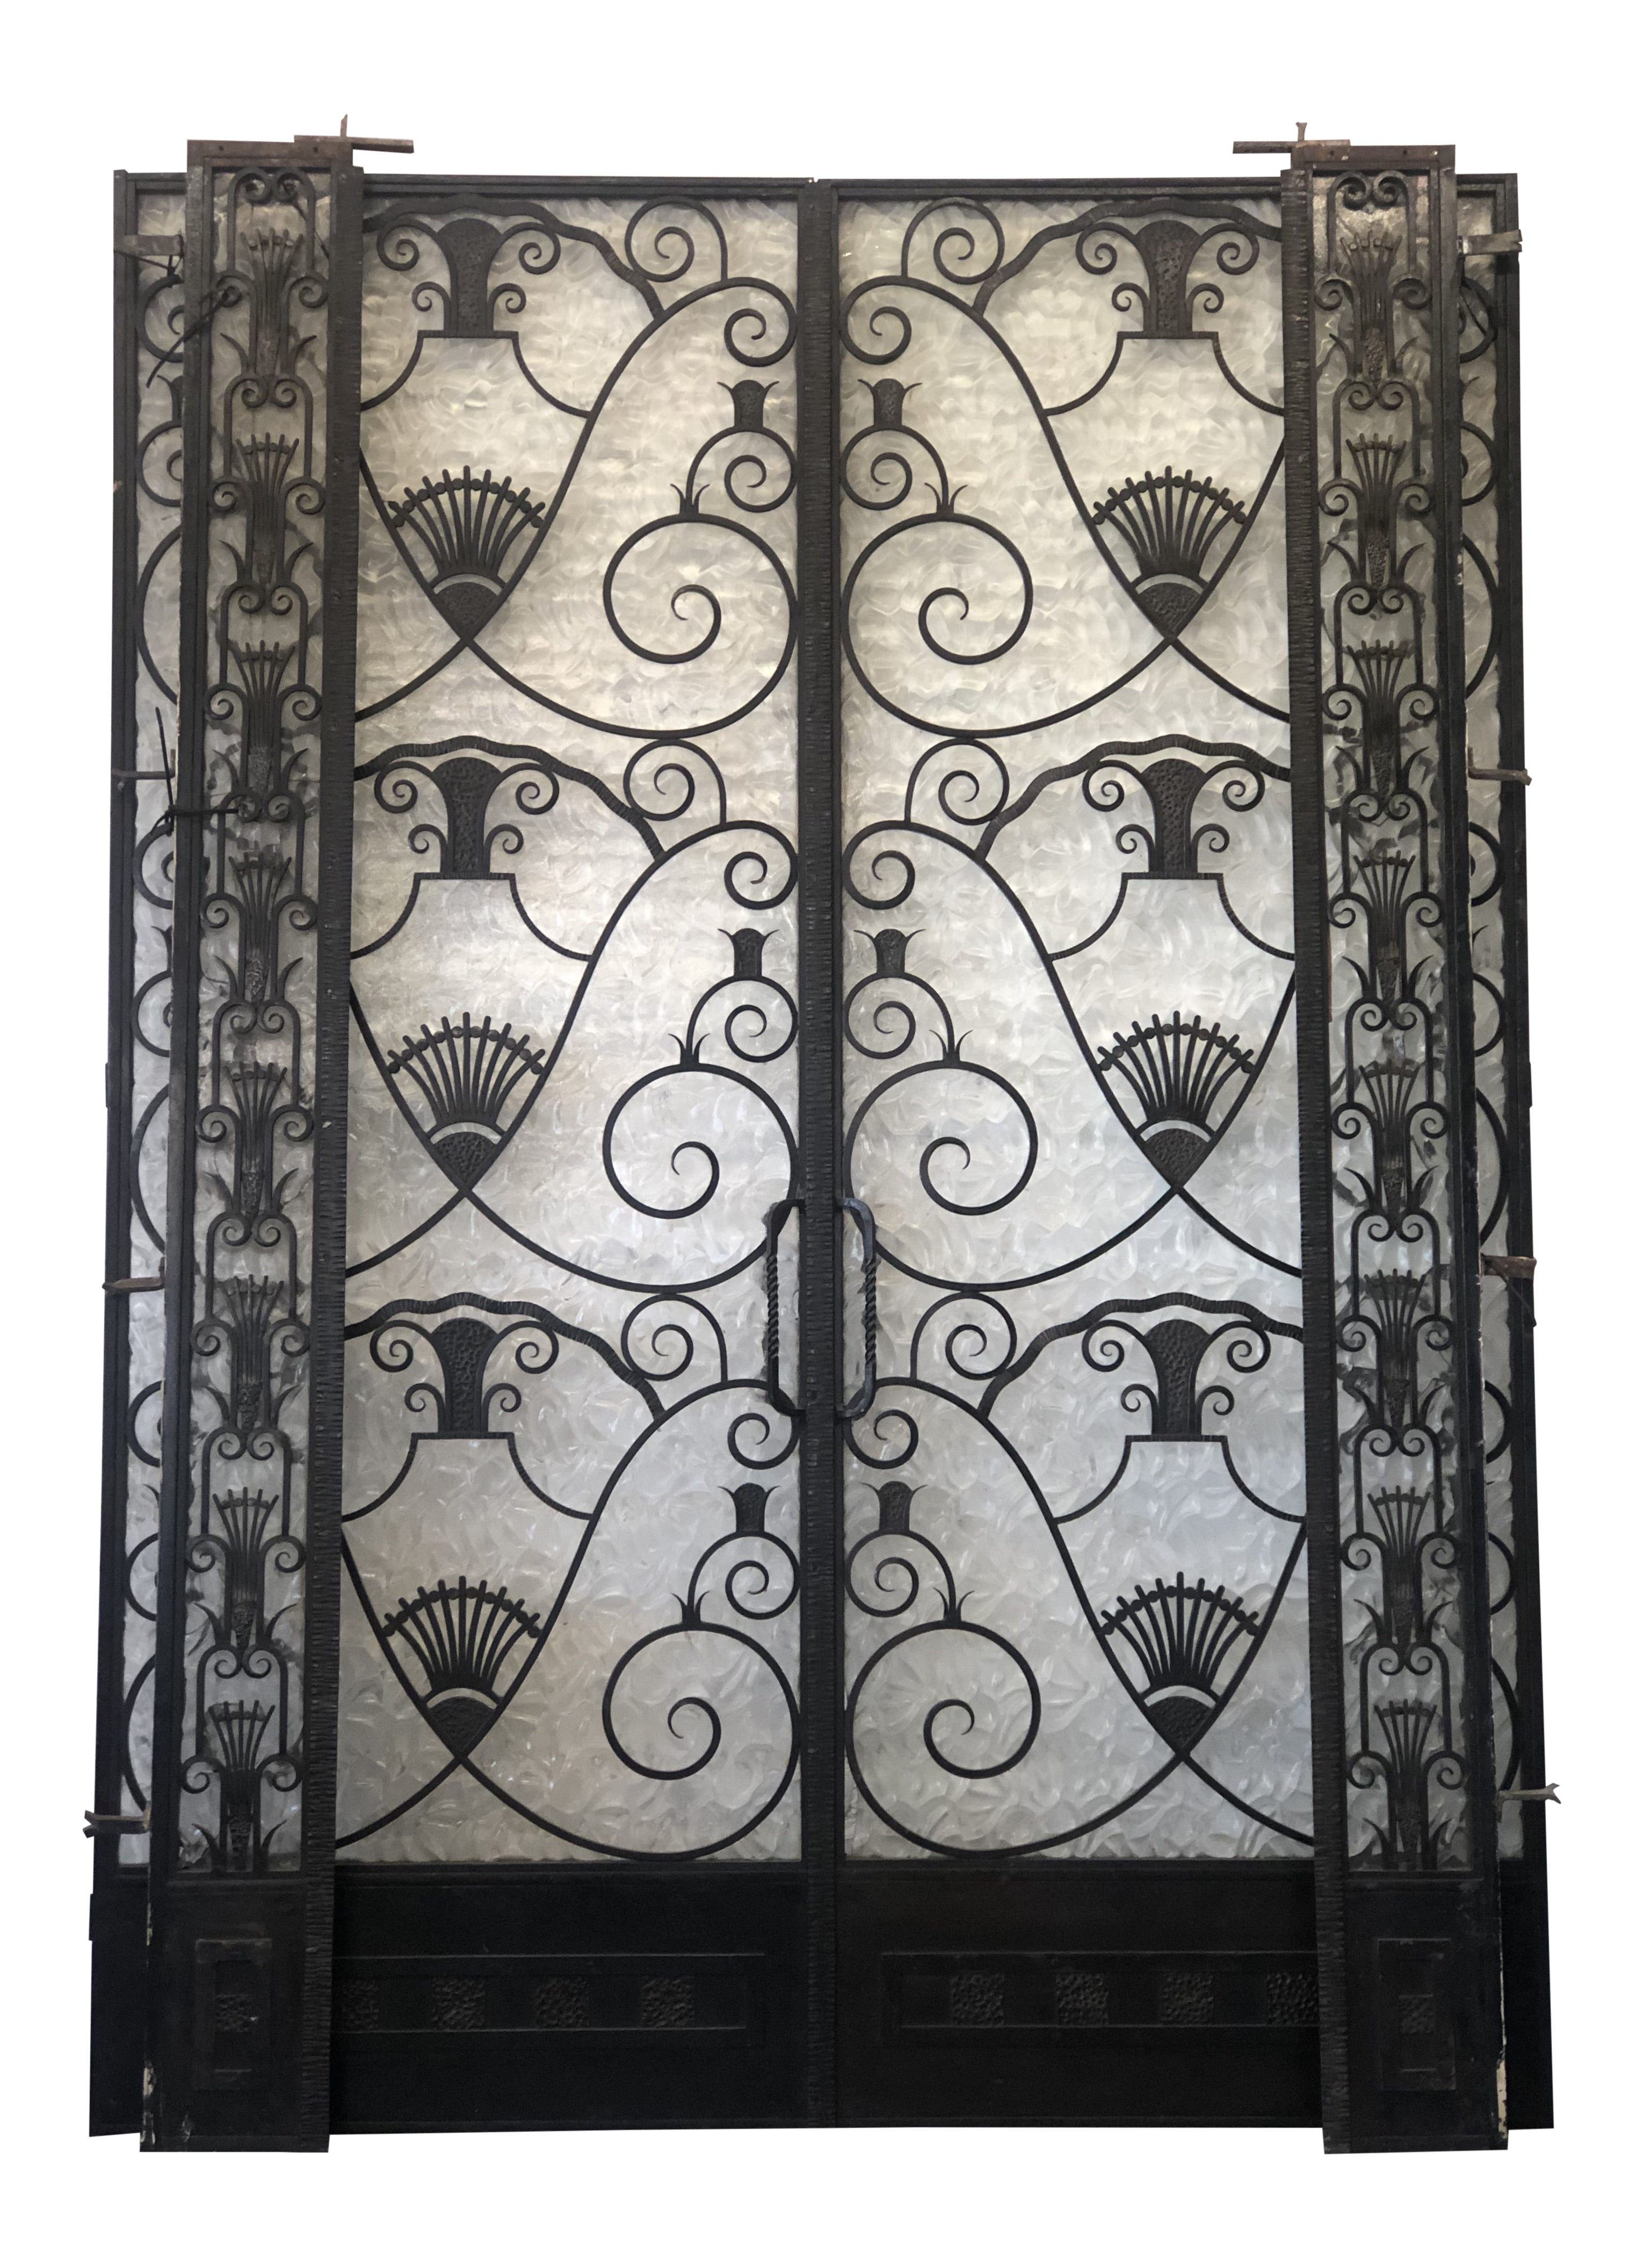 Chaise Style Art Nouveau 1920s metal french doors art deco nouveau style with iron and sidelights -  a pair